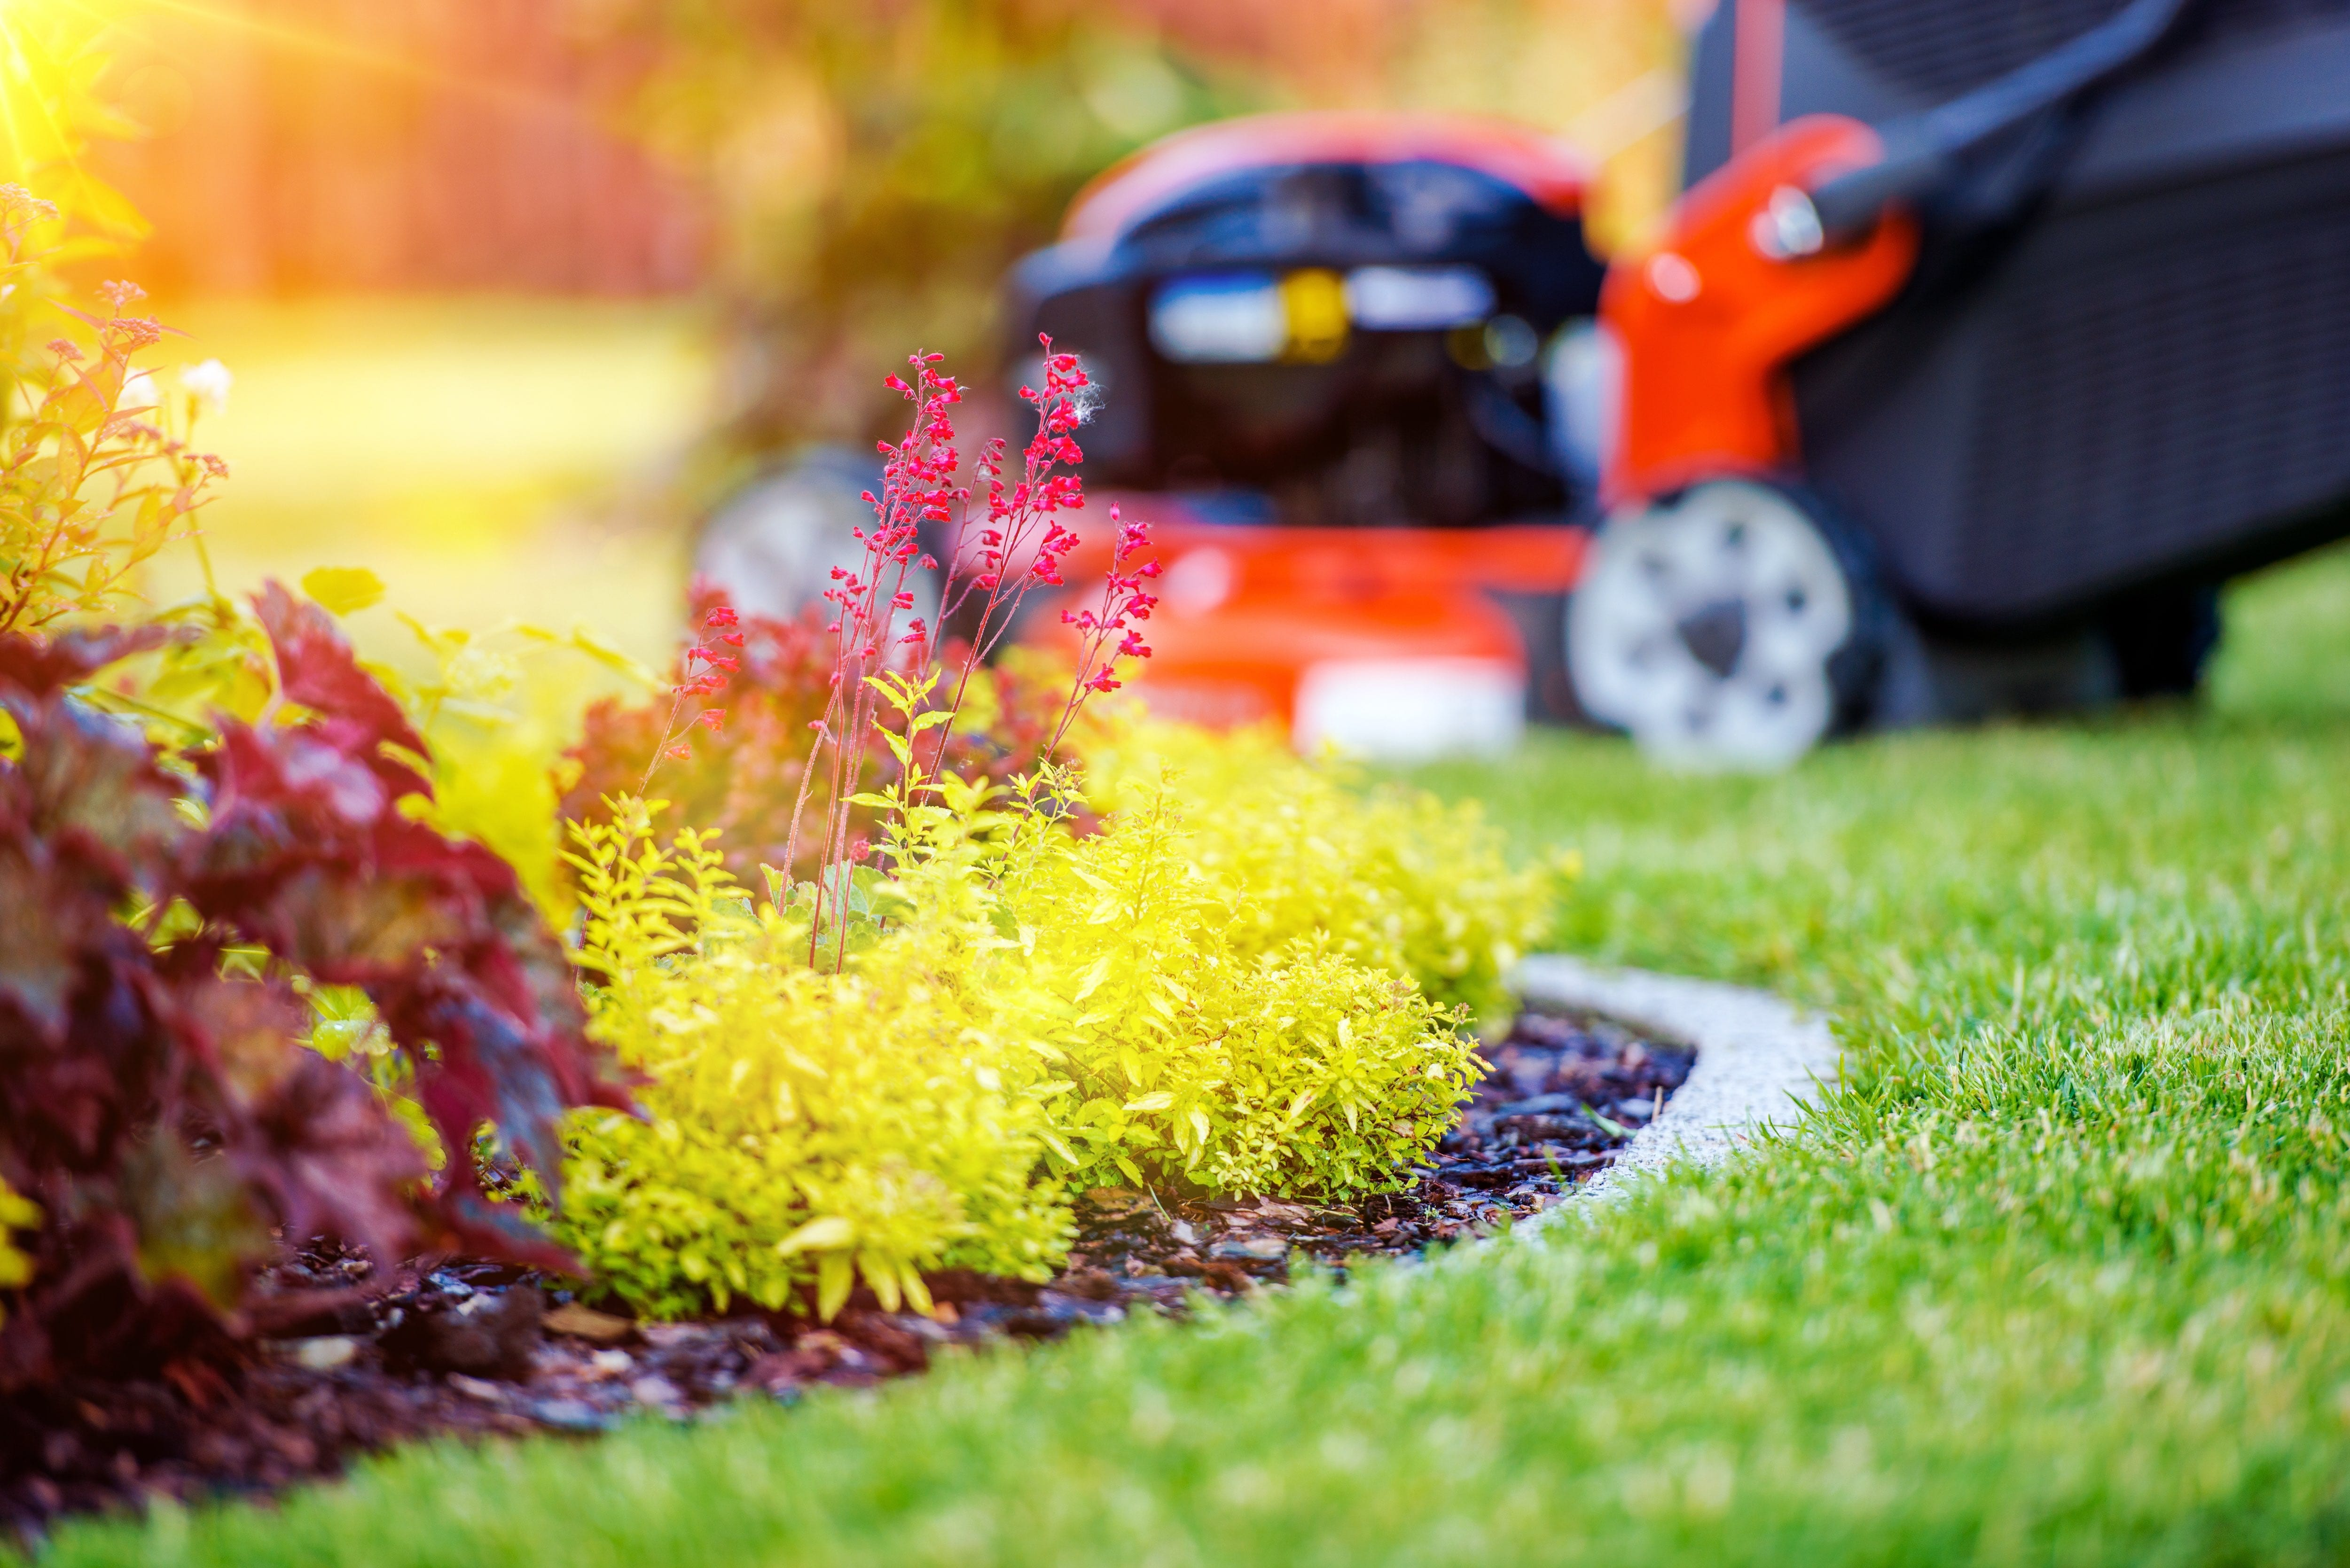 5 Spring Lawn Care Tips to Help Your Yard Stay Beautiful